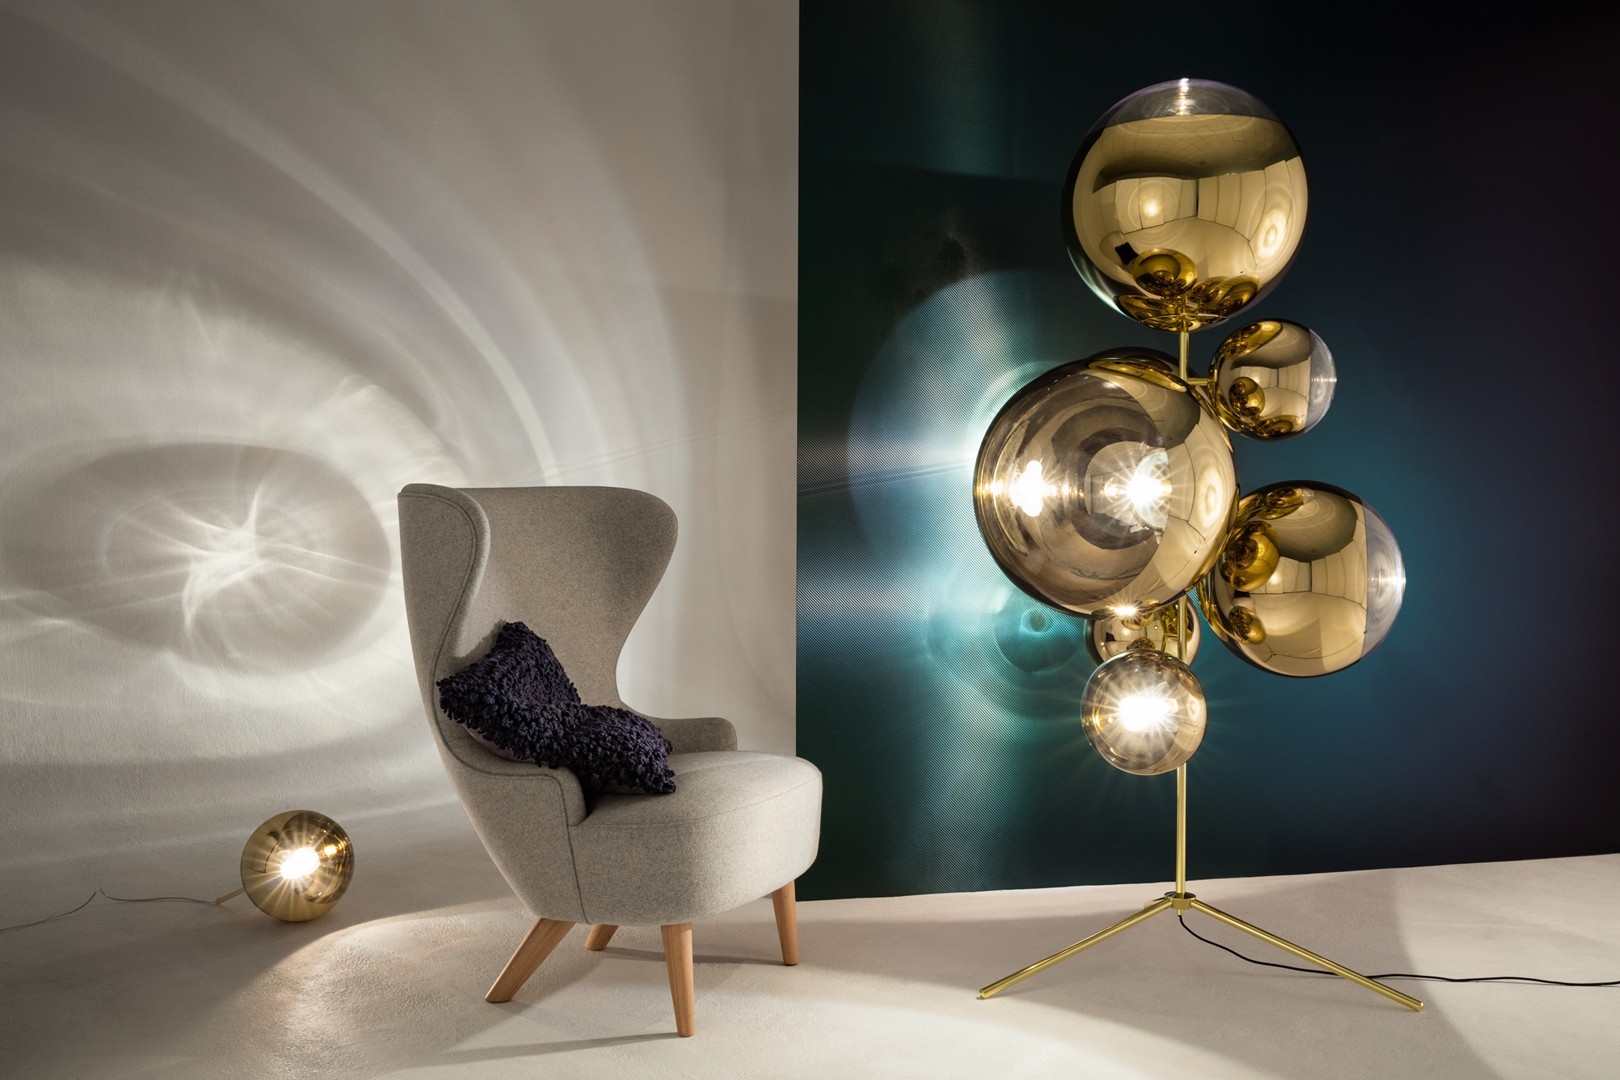 Mirrorball Standing Chandelier with Wingback Mirco & Boucle Cusion (Copy) - copia